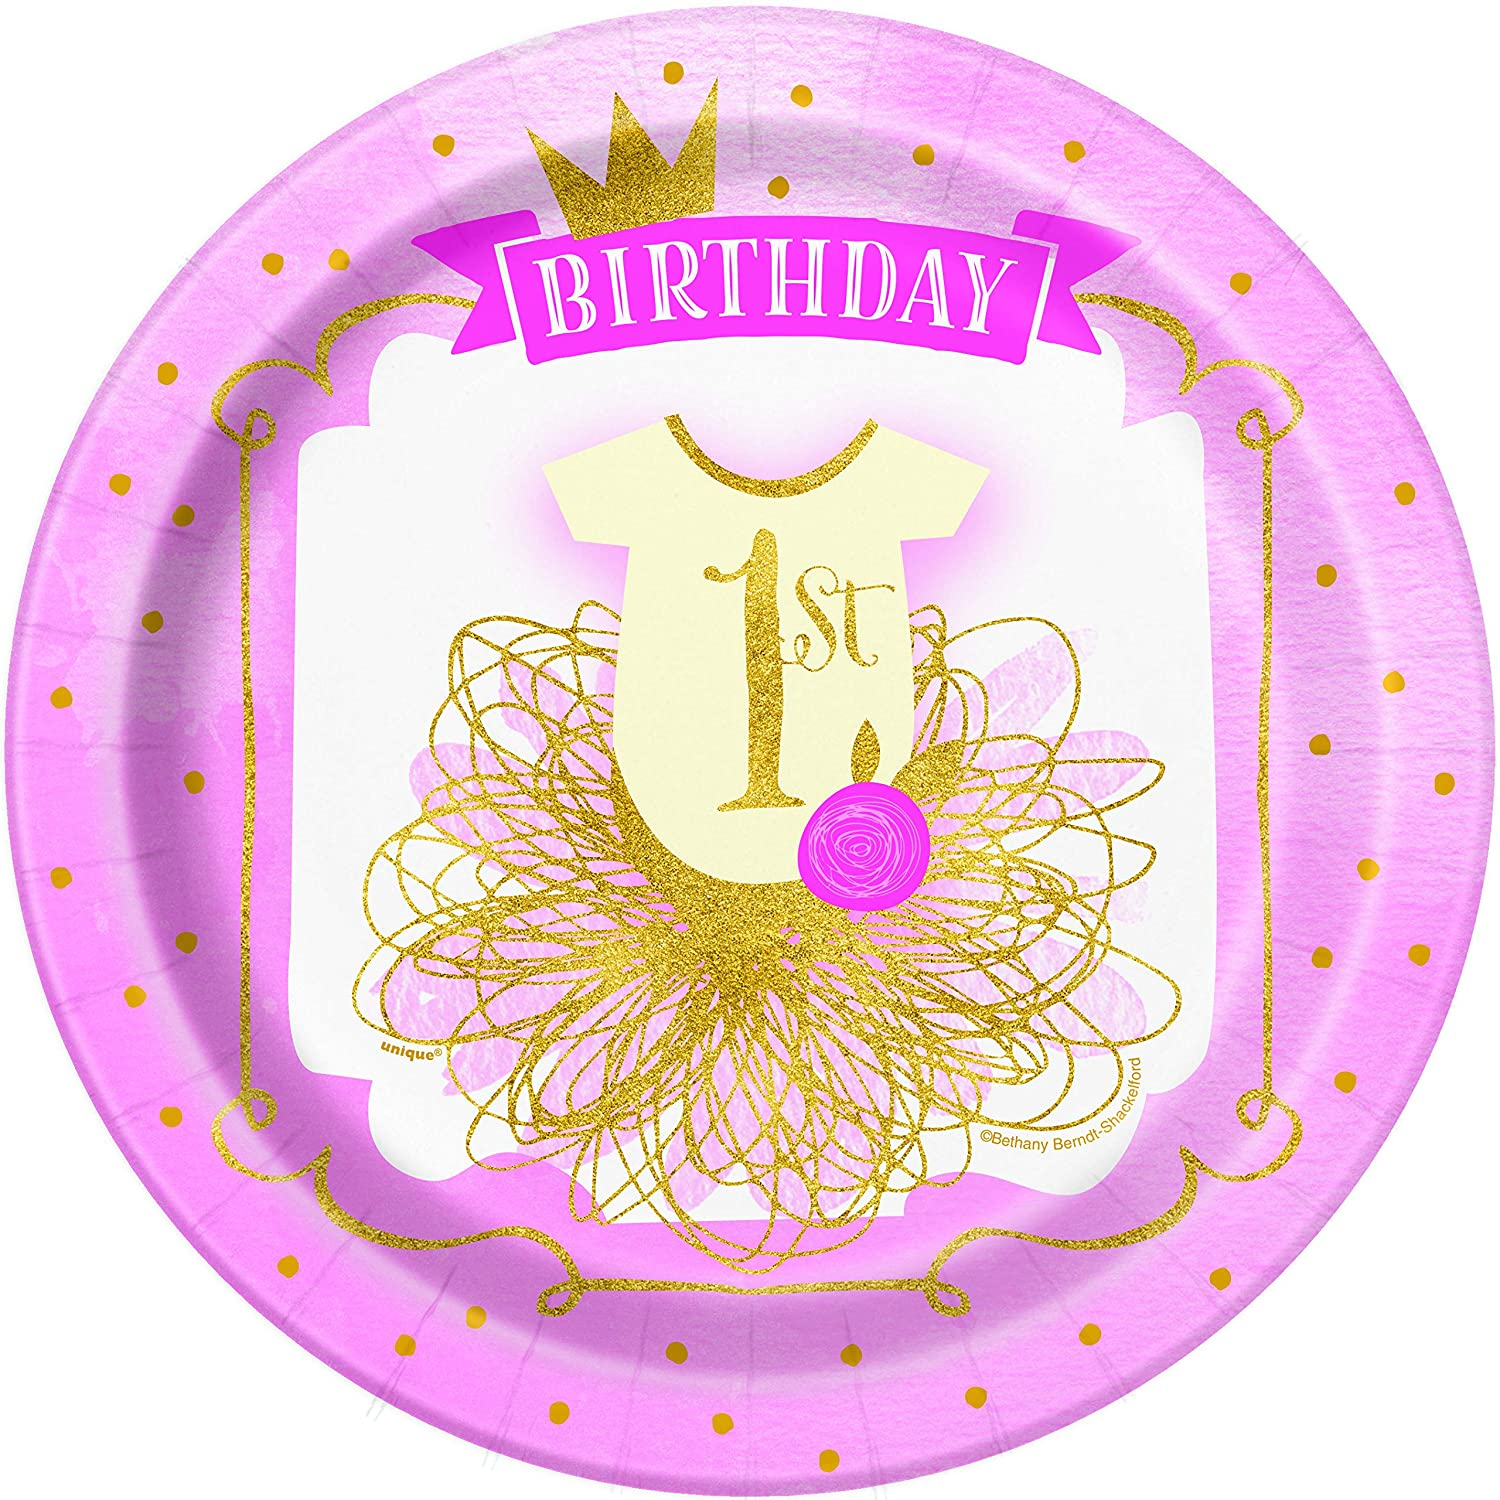 Napkins Pink and Gold Girls 1st Birthday Paper Dinner Plates Dessert Cake Plates and Cups Serves 16 Guests Pink and Gold Girls First Birthday Tableware Party Supplies Pack| Premium and Super Cute